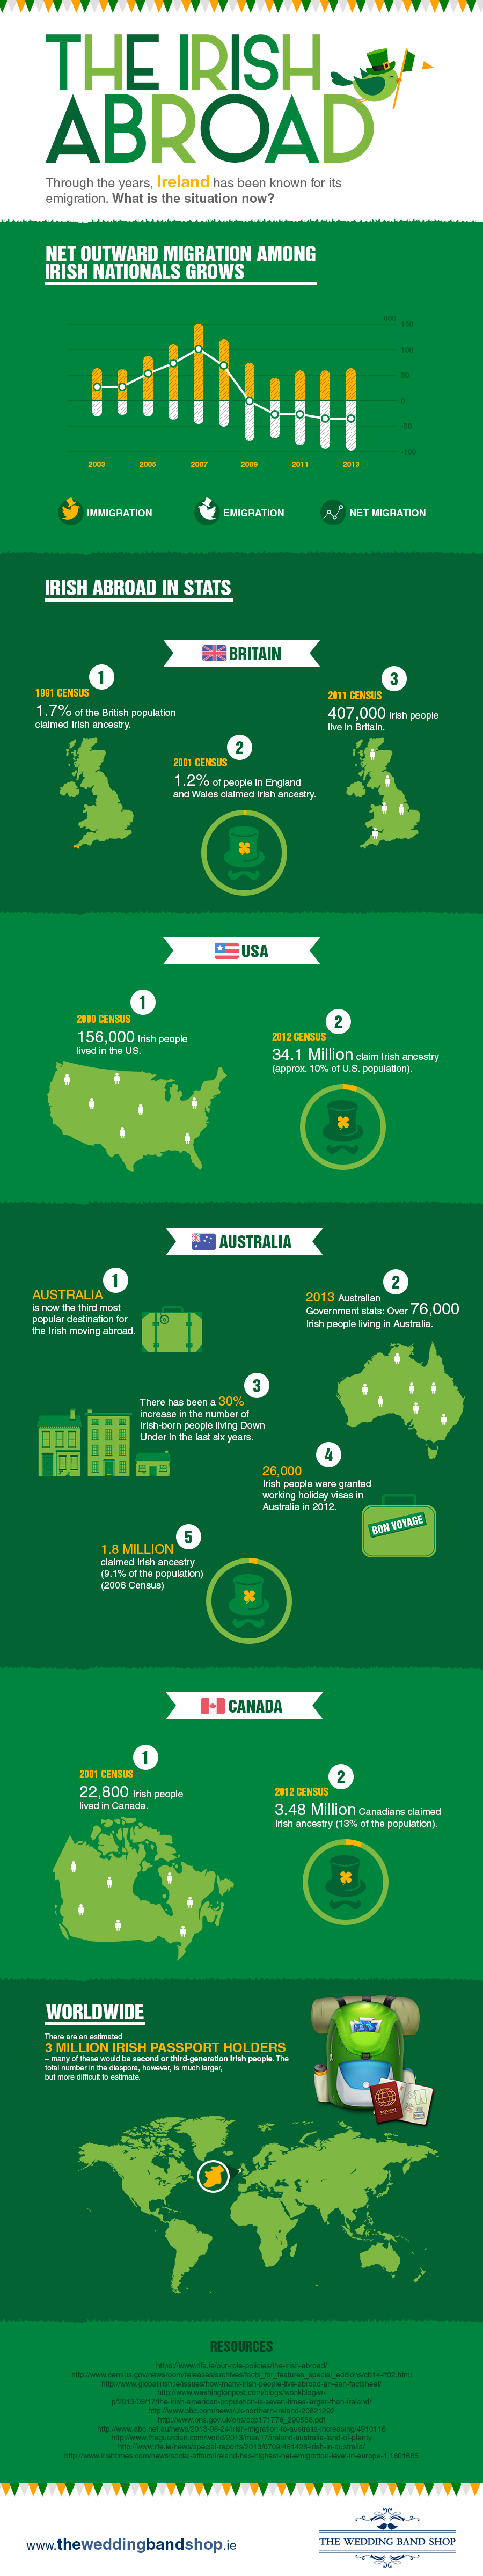 Irish Abroad Infographic